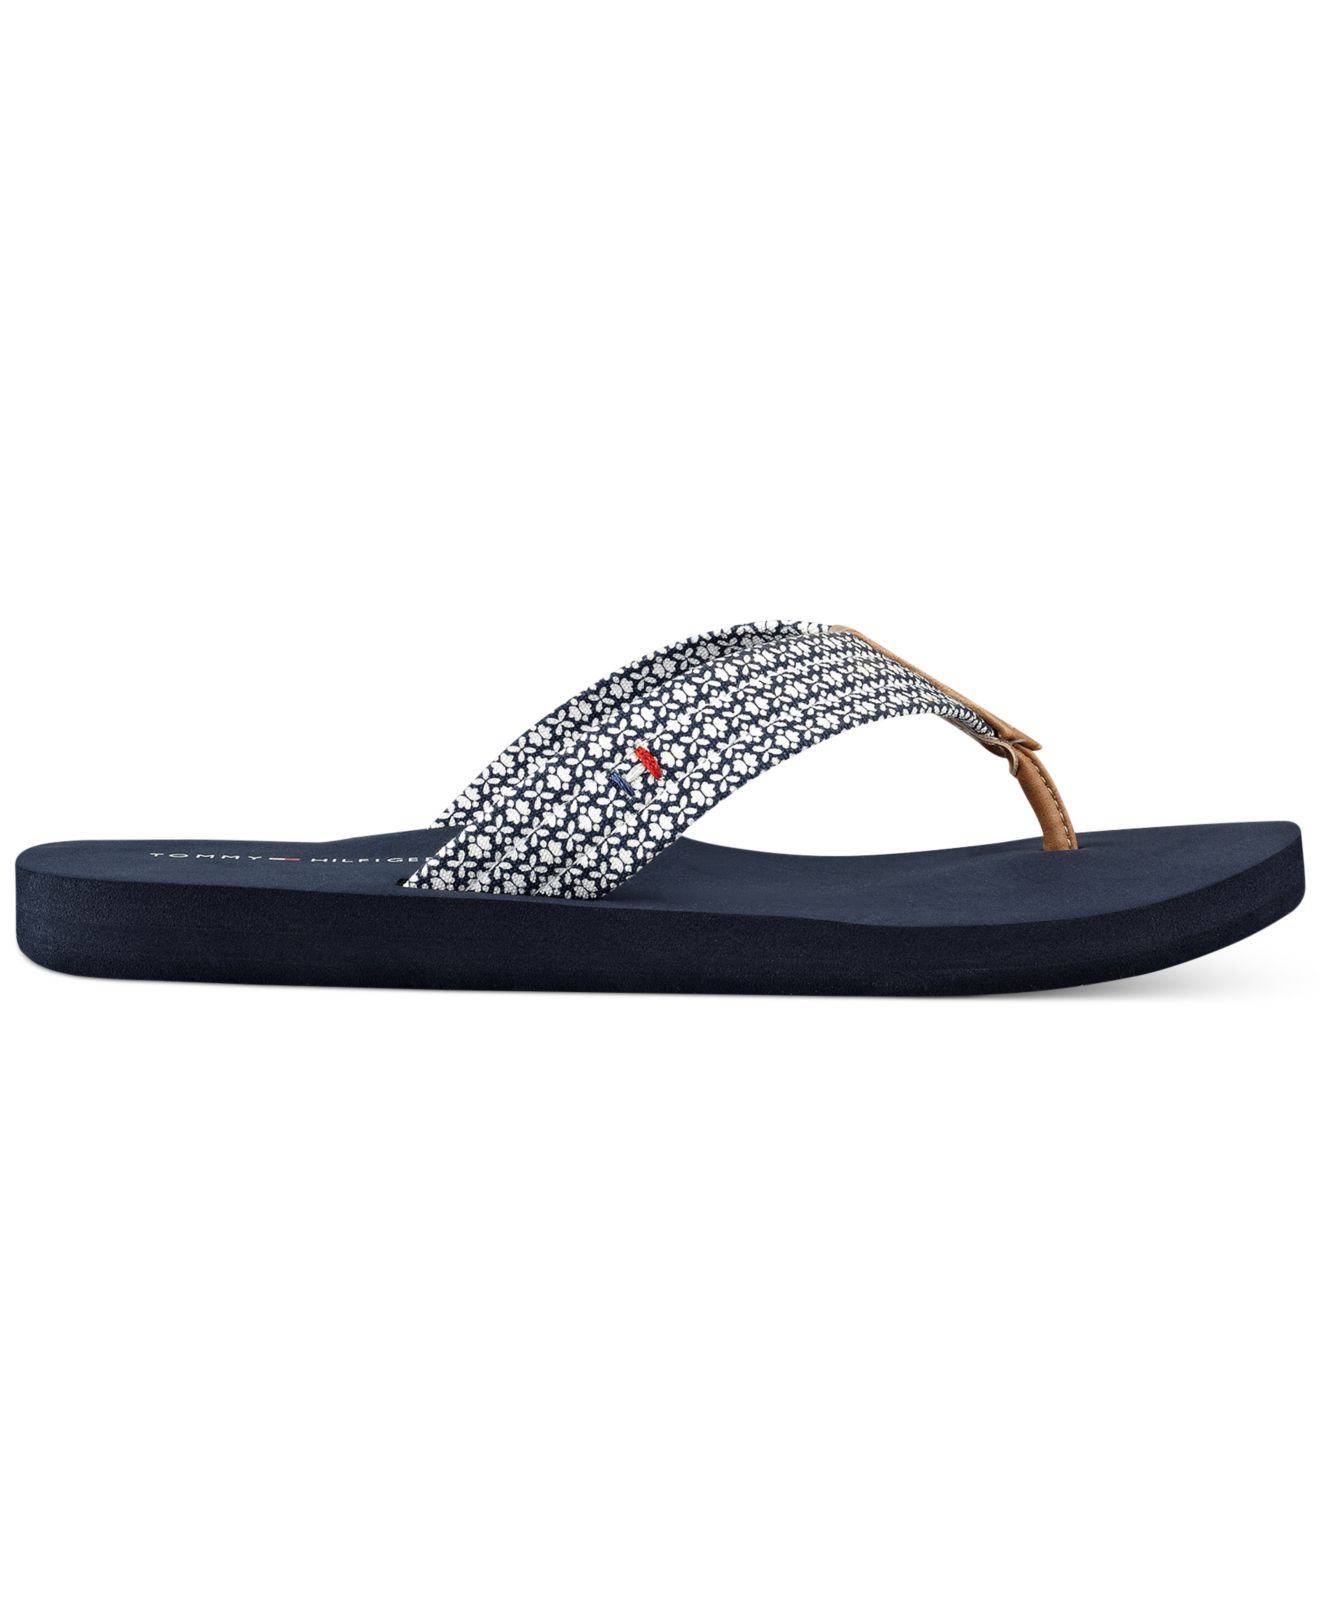 tommy hilfiger women 39 s caber flip flops in blue lyst. Black Bedroom Furniture Sets. Home Design Ideas